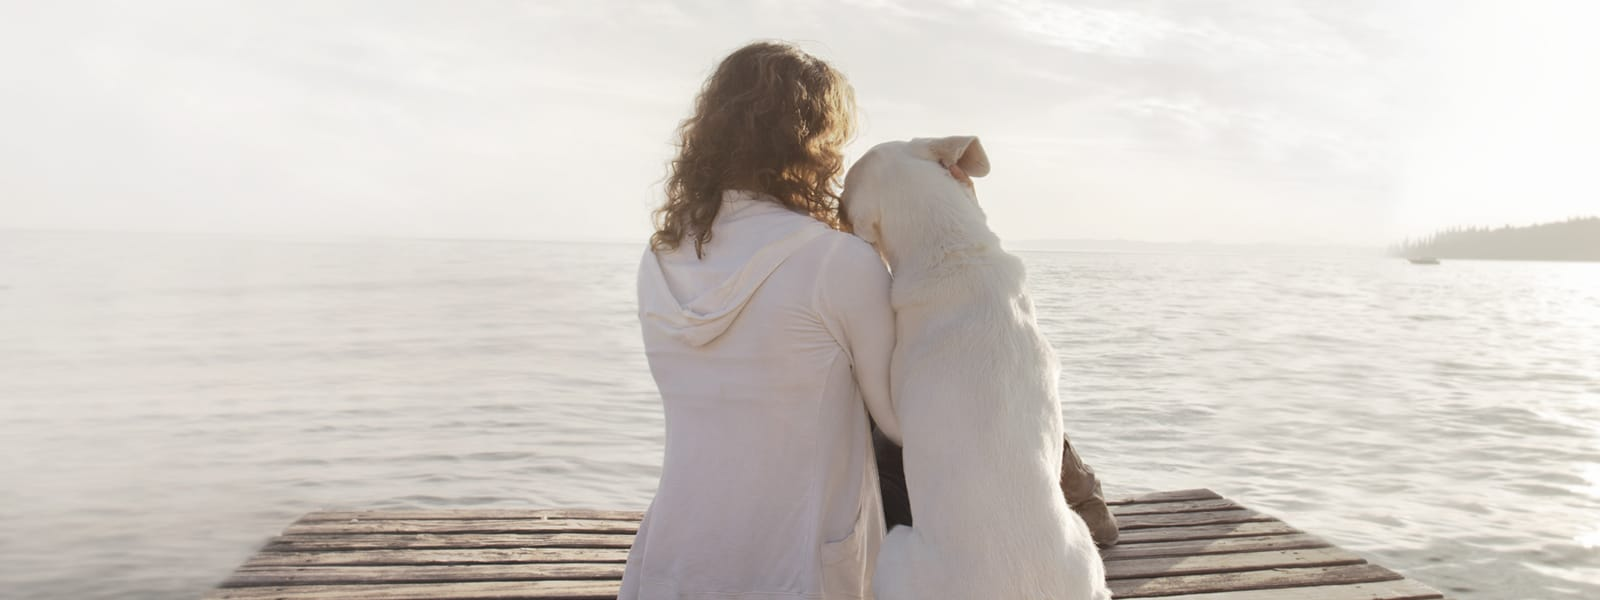 woman and her dog admire together the scenery